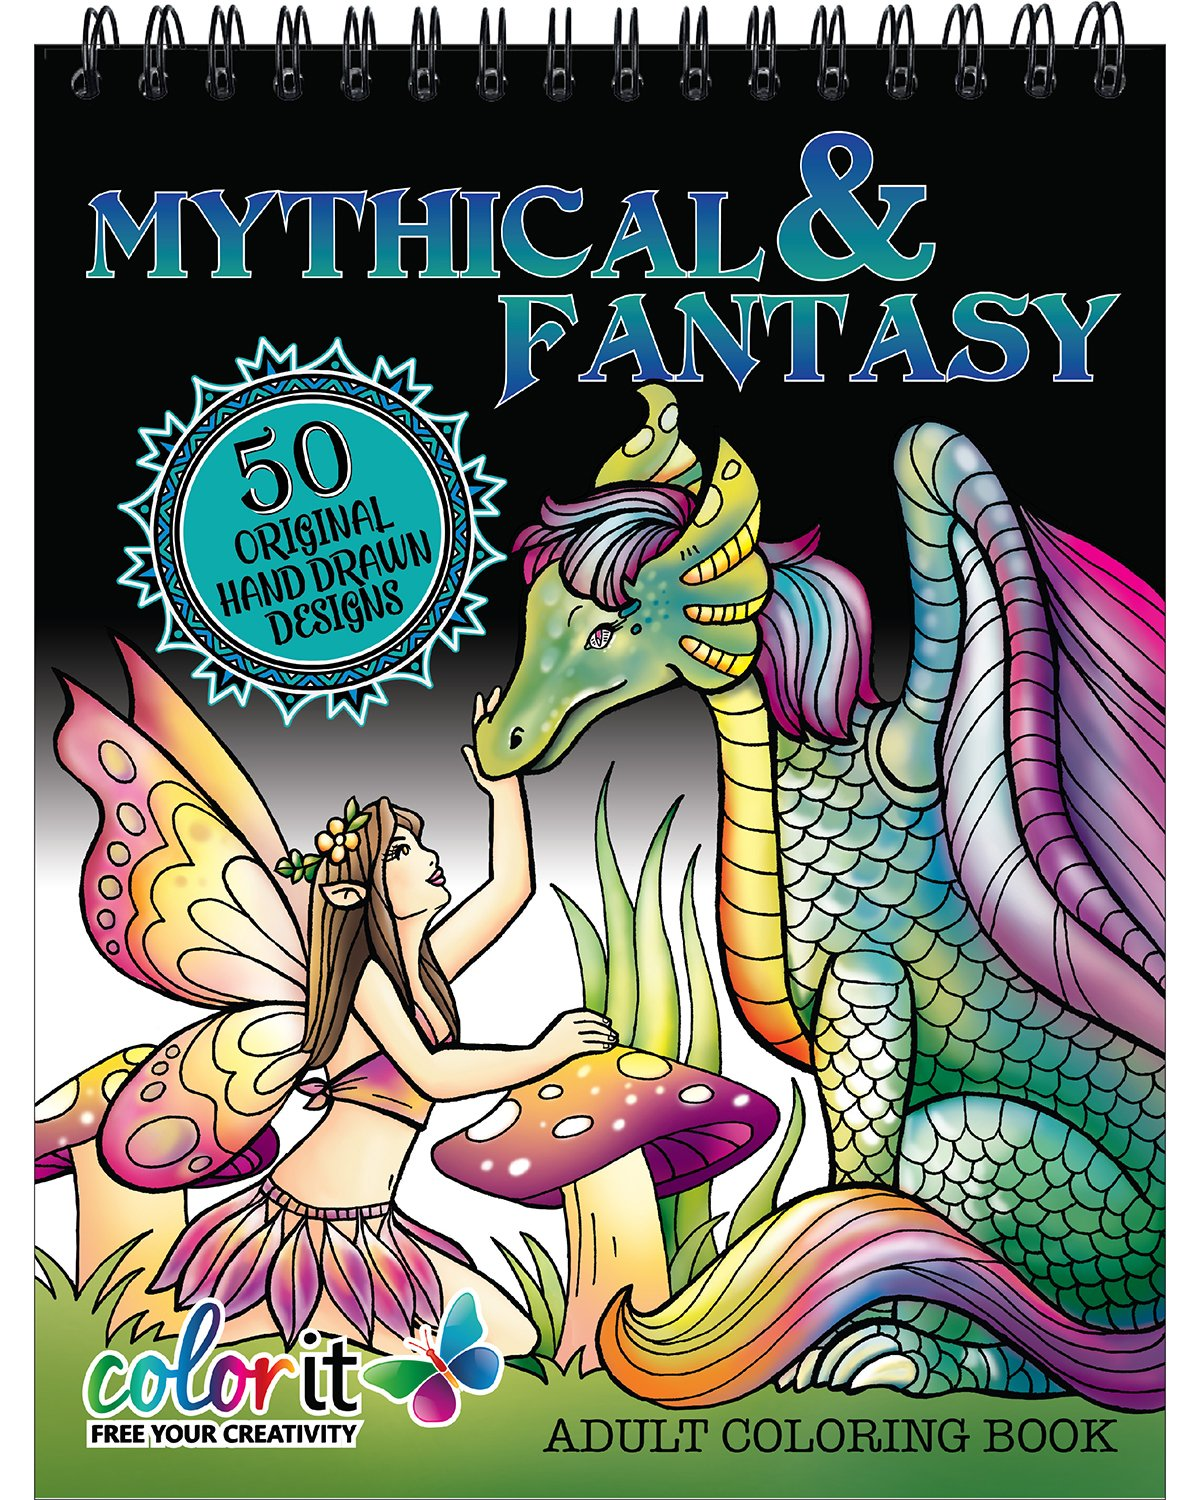 Mythical & Fantasy Adult Coloring Book - Features 50 Original Hand Drawn  Designs Printed on Artist Quality Paper, Hardback Covers, Spiral Binding,  ...